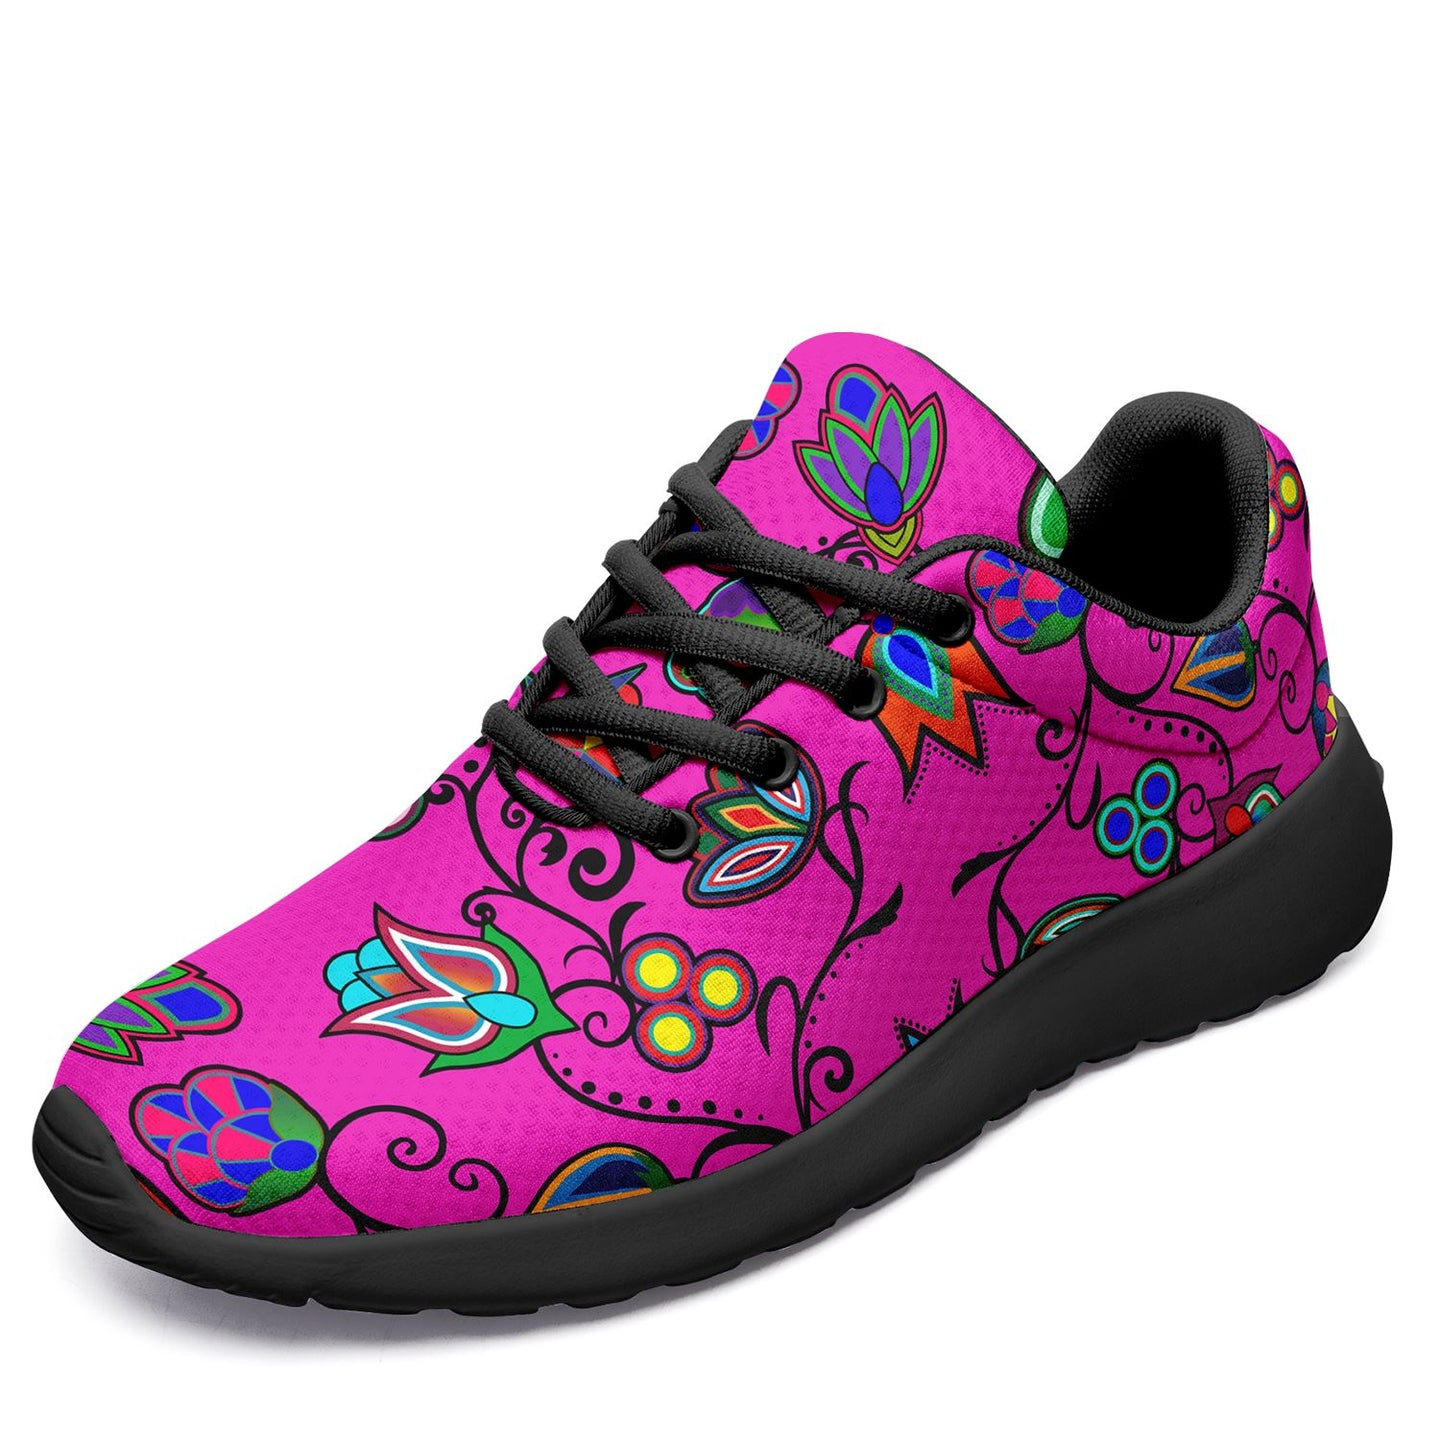 Indigenous Paisley Ikkaayi Sport Sneakers 49 Dzine US Women 4.5 / US Youth 3.5 / EUR 35 Black Sole